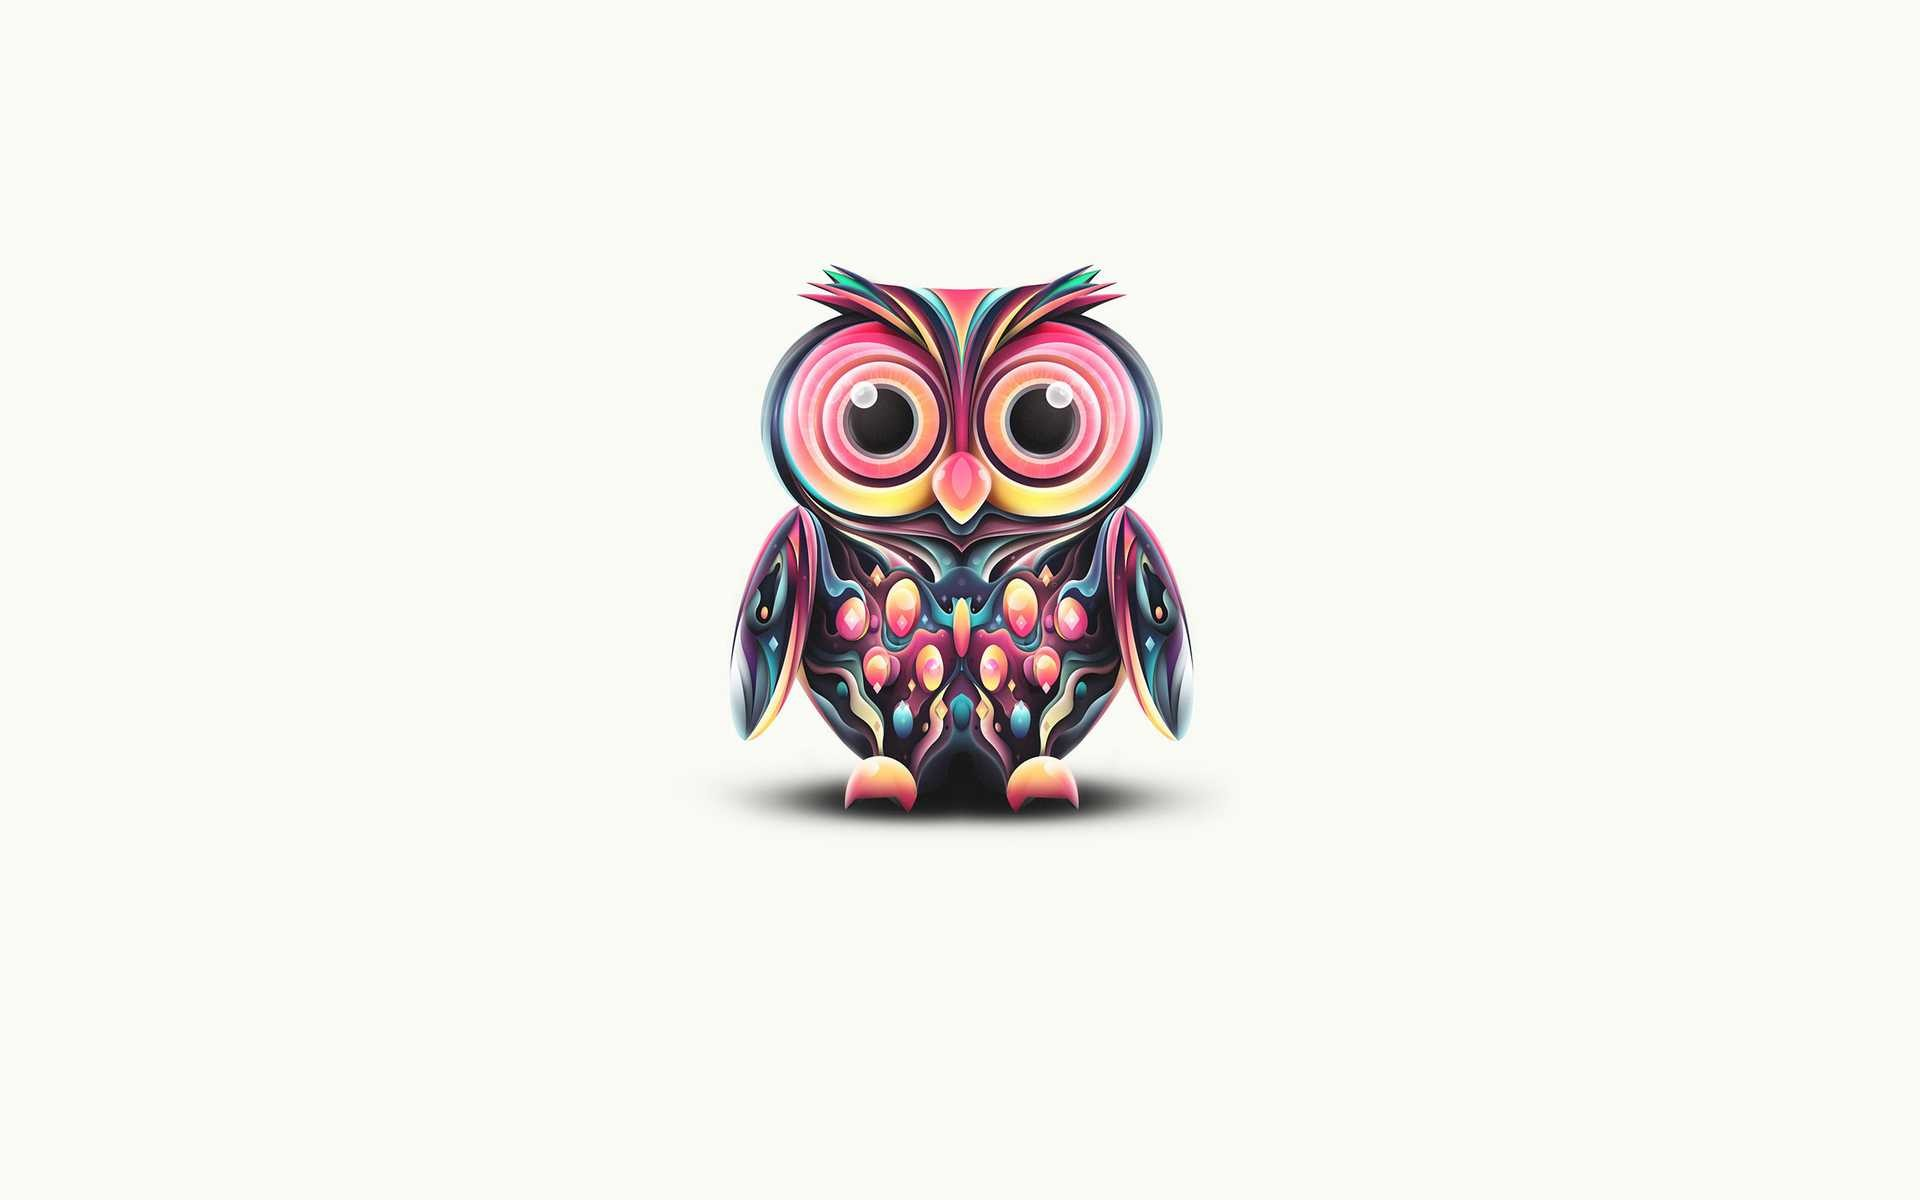 Res: 1920x1200, Cute Owl Wallpaper Hd Pics Backgrounds Px Of Iphone